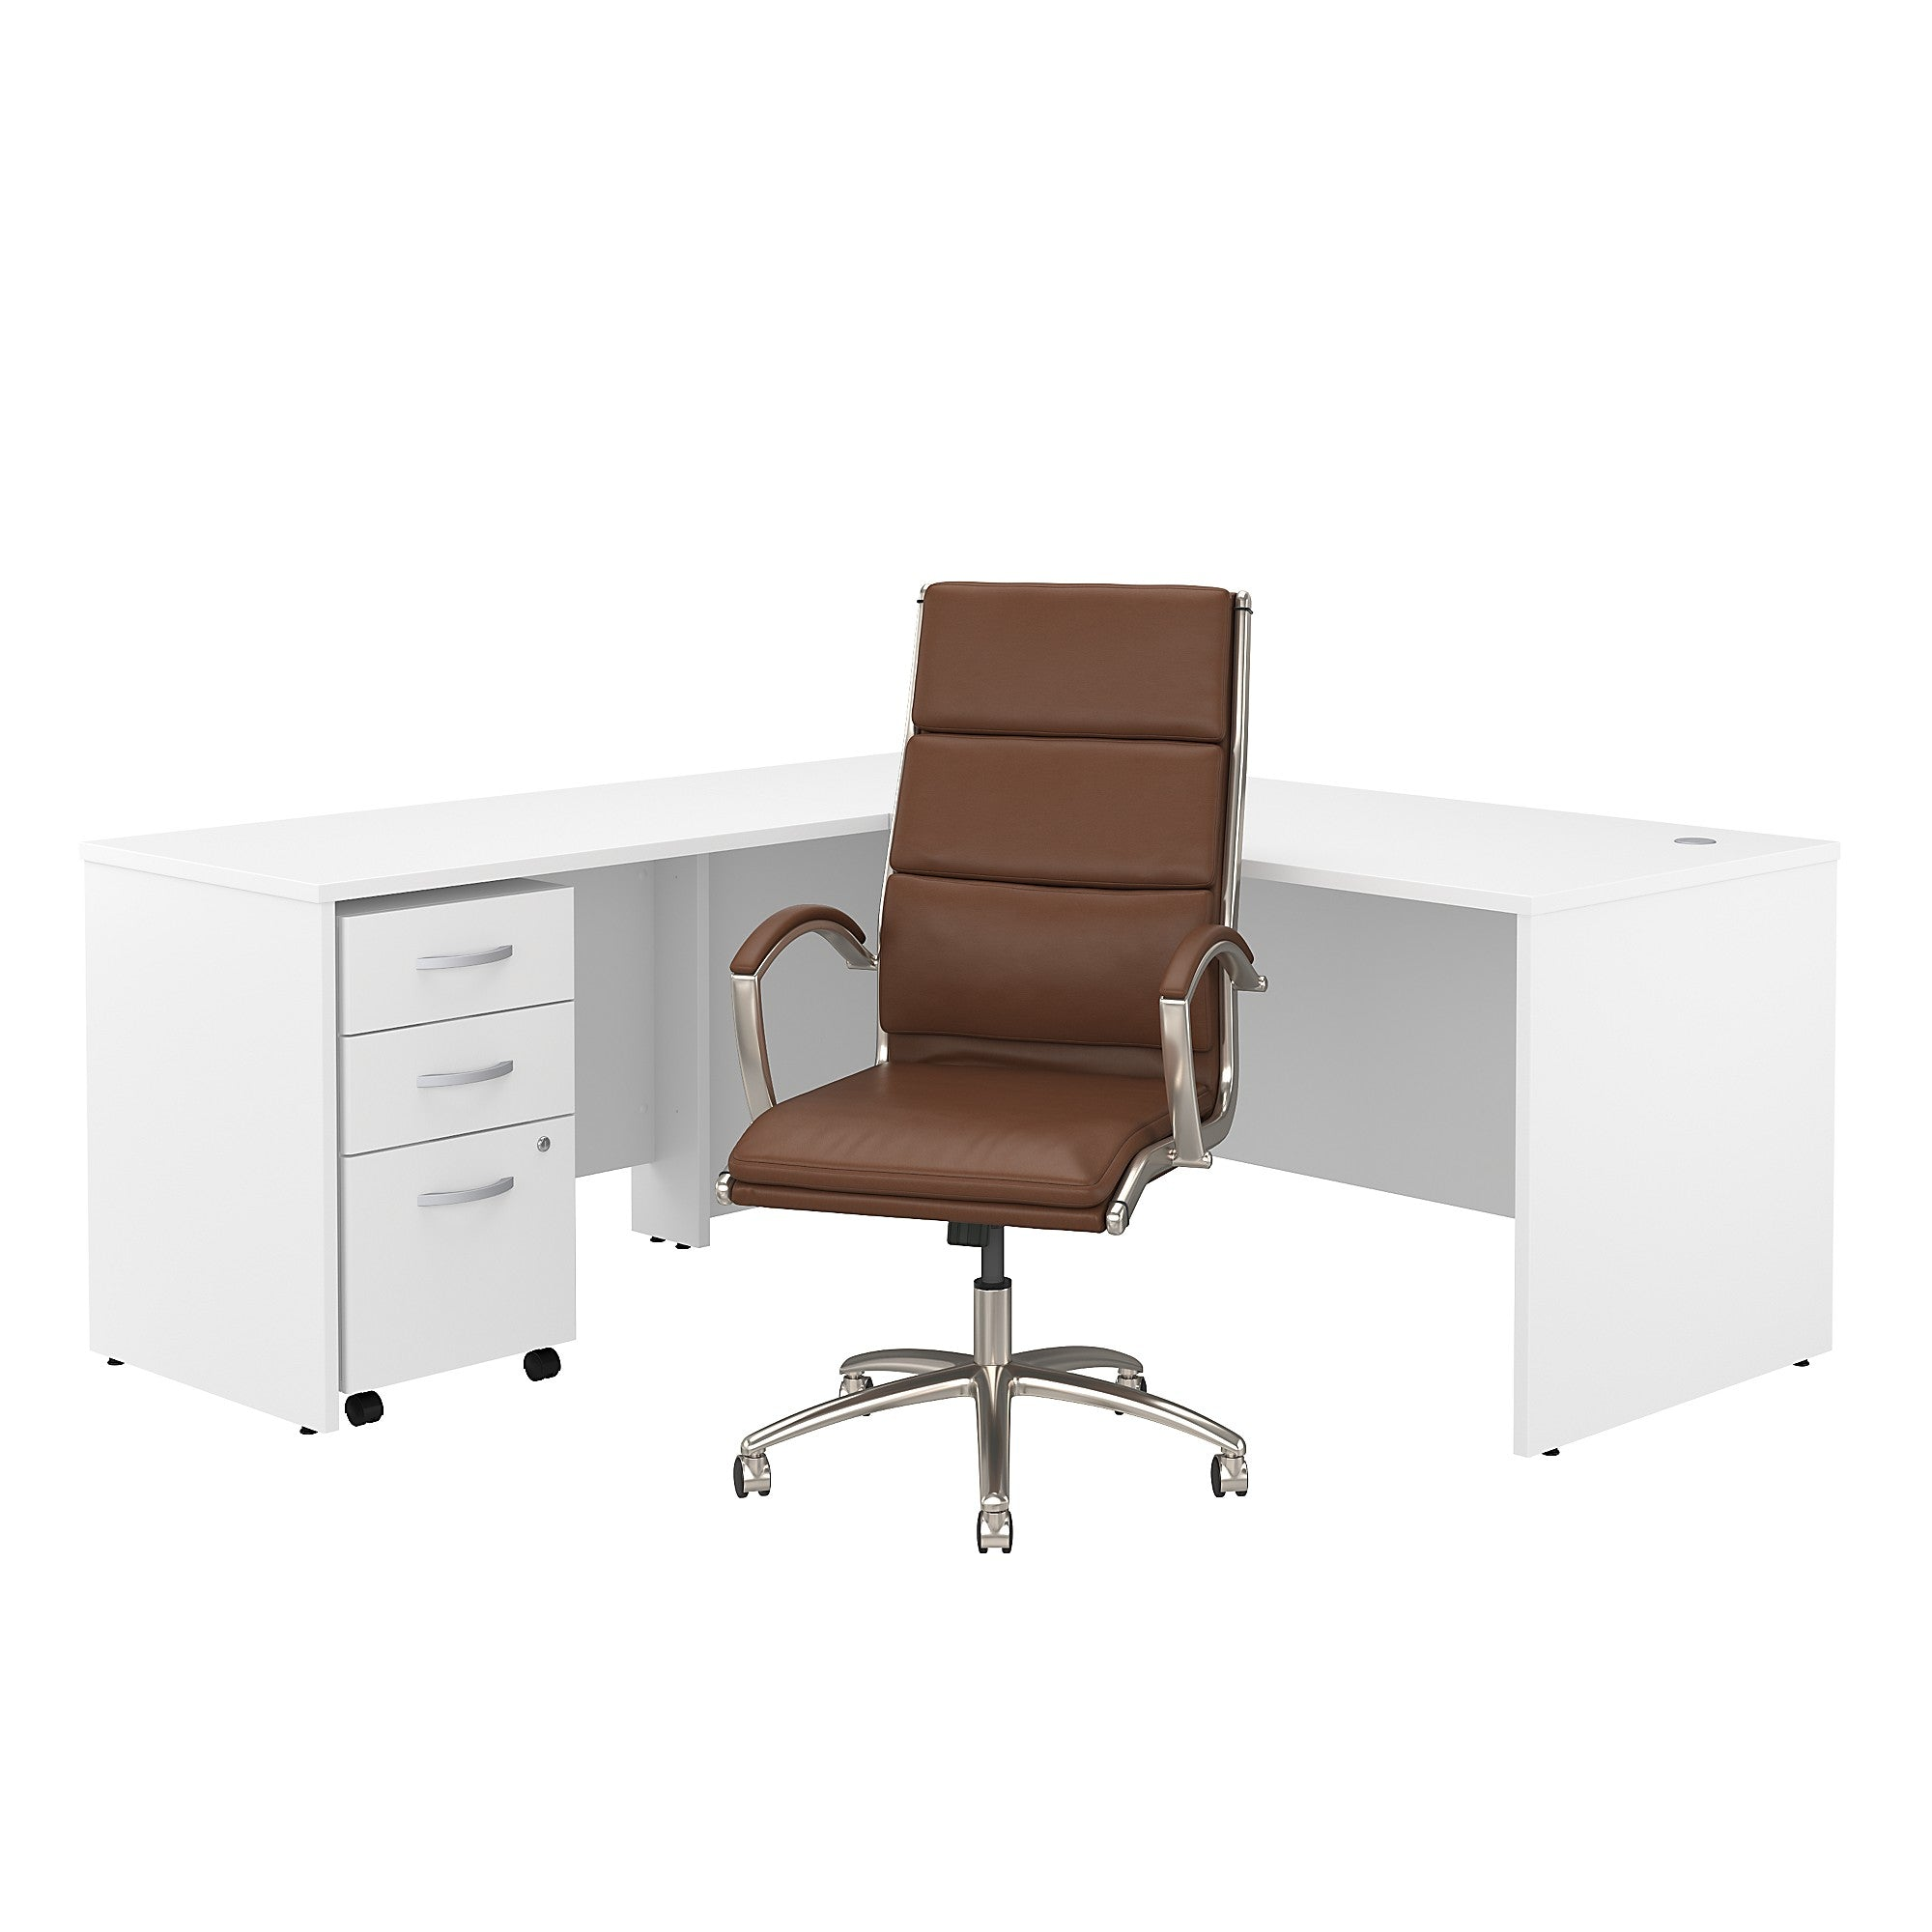 Studio C 72W L Shaped Desk with Mobile File Cabinet & High Back Chair